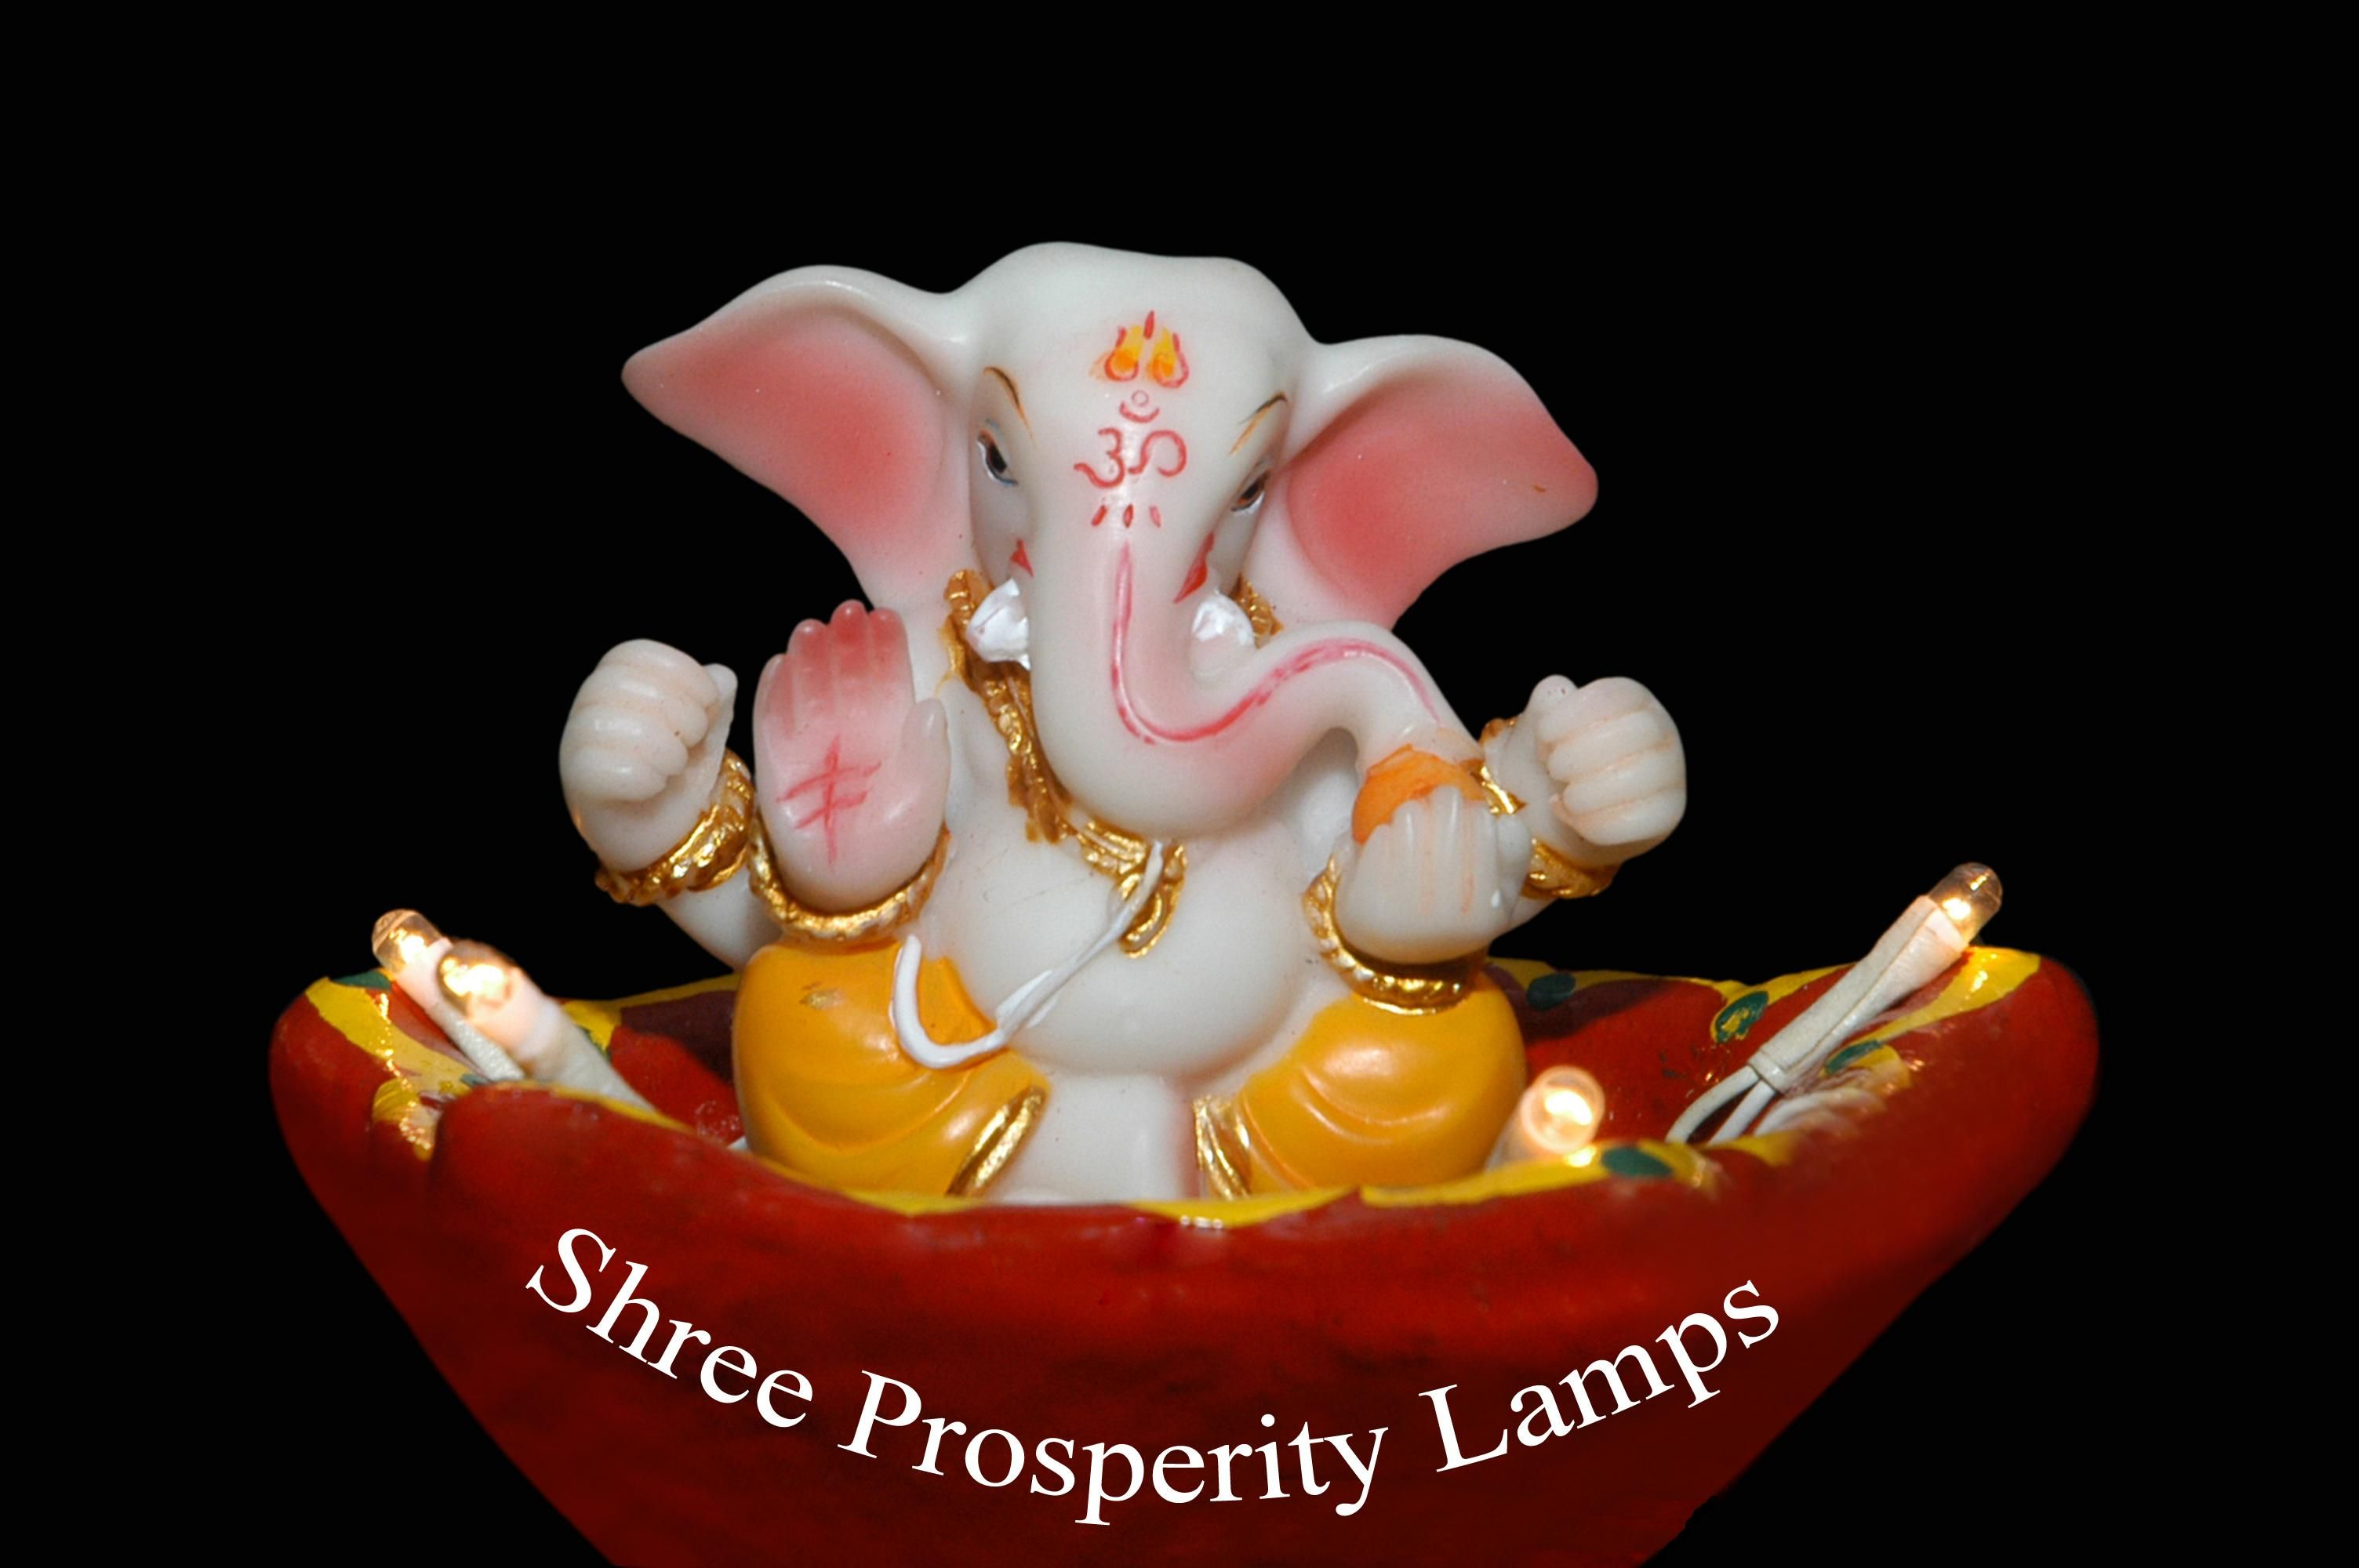 Shree Panchamua Lamps Great Gifts Chennai With Images